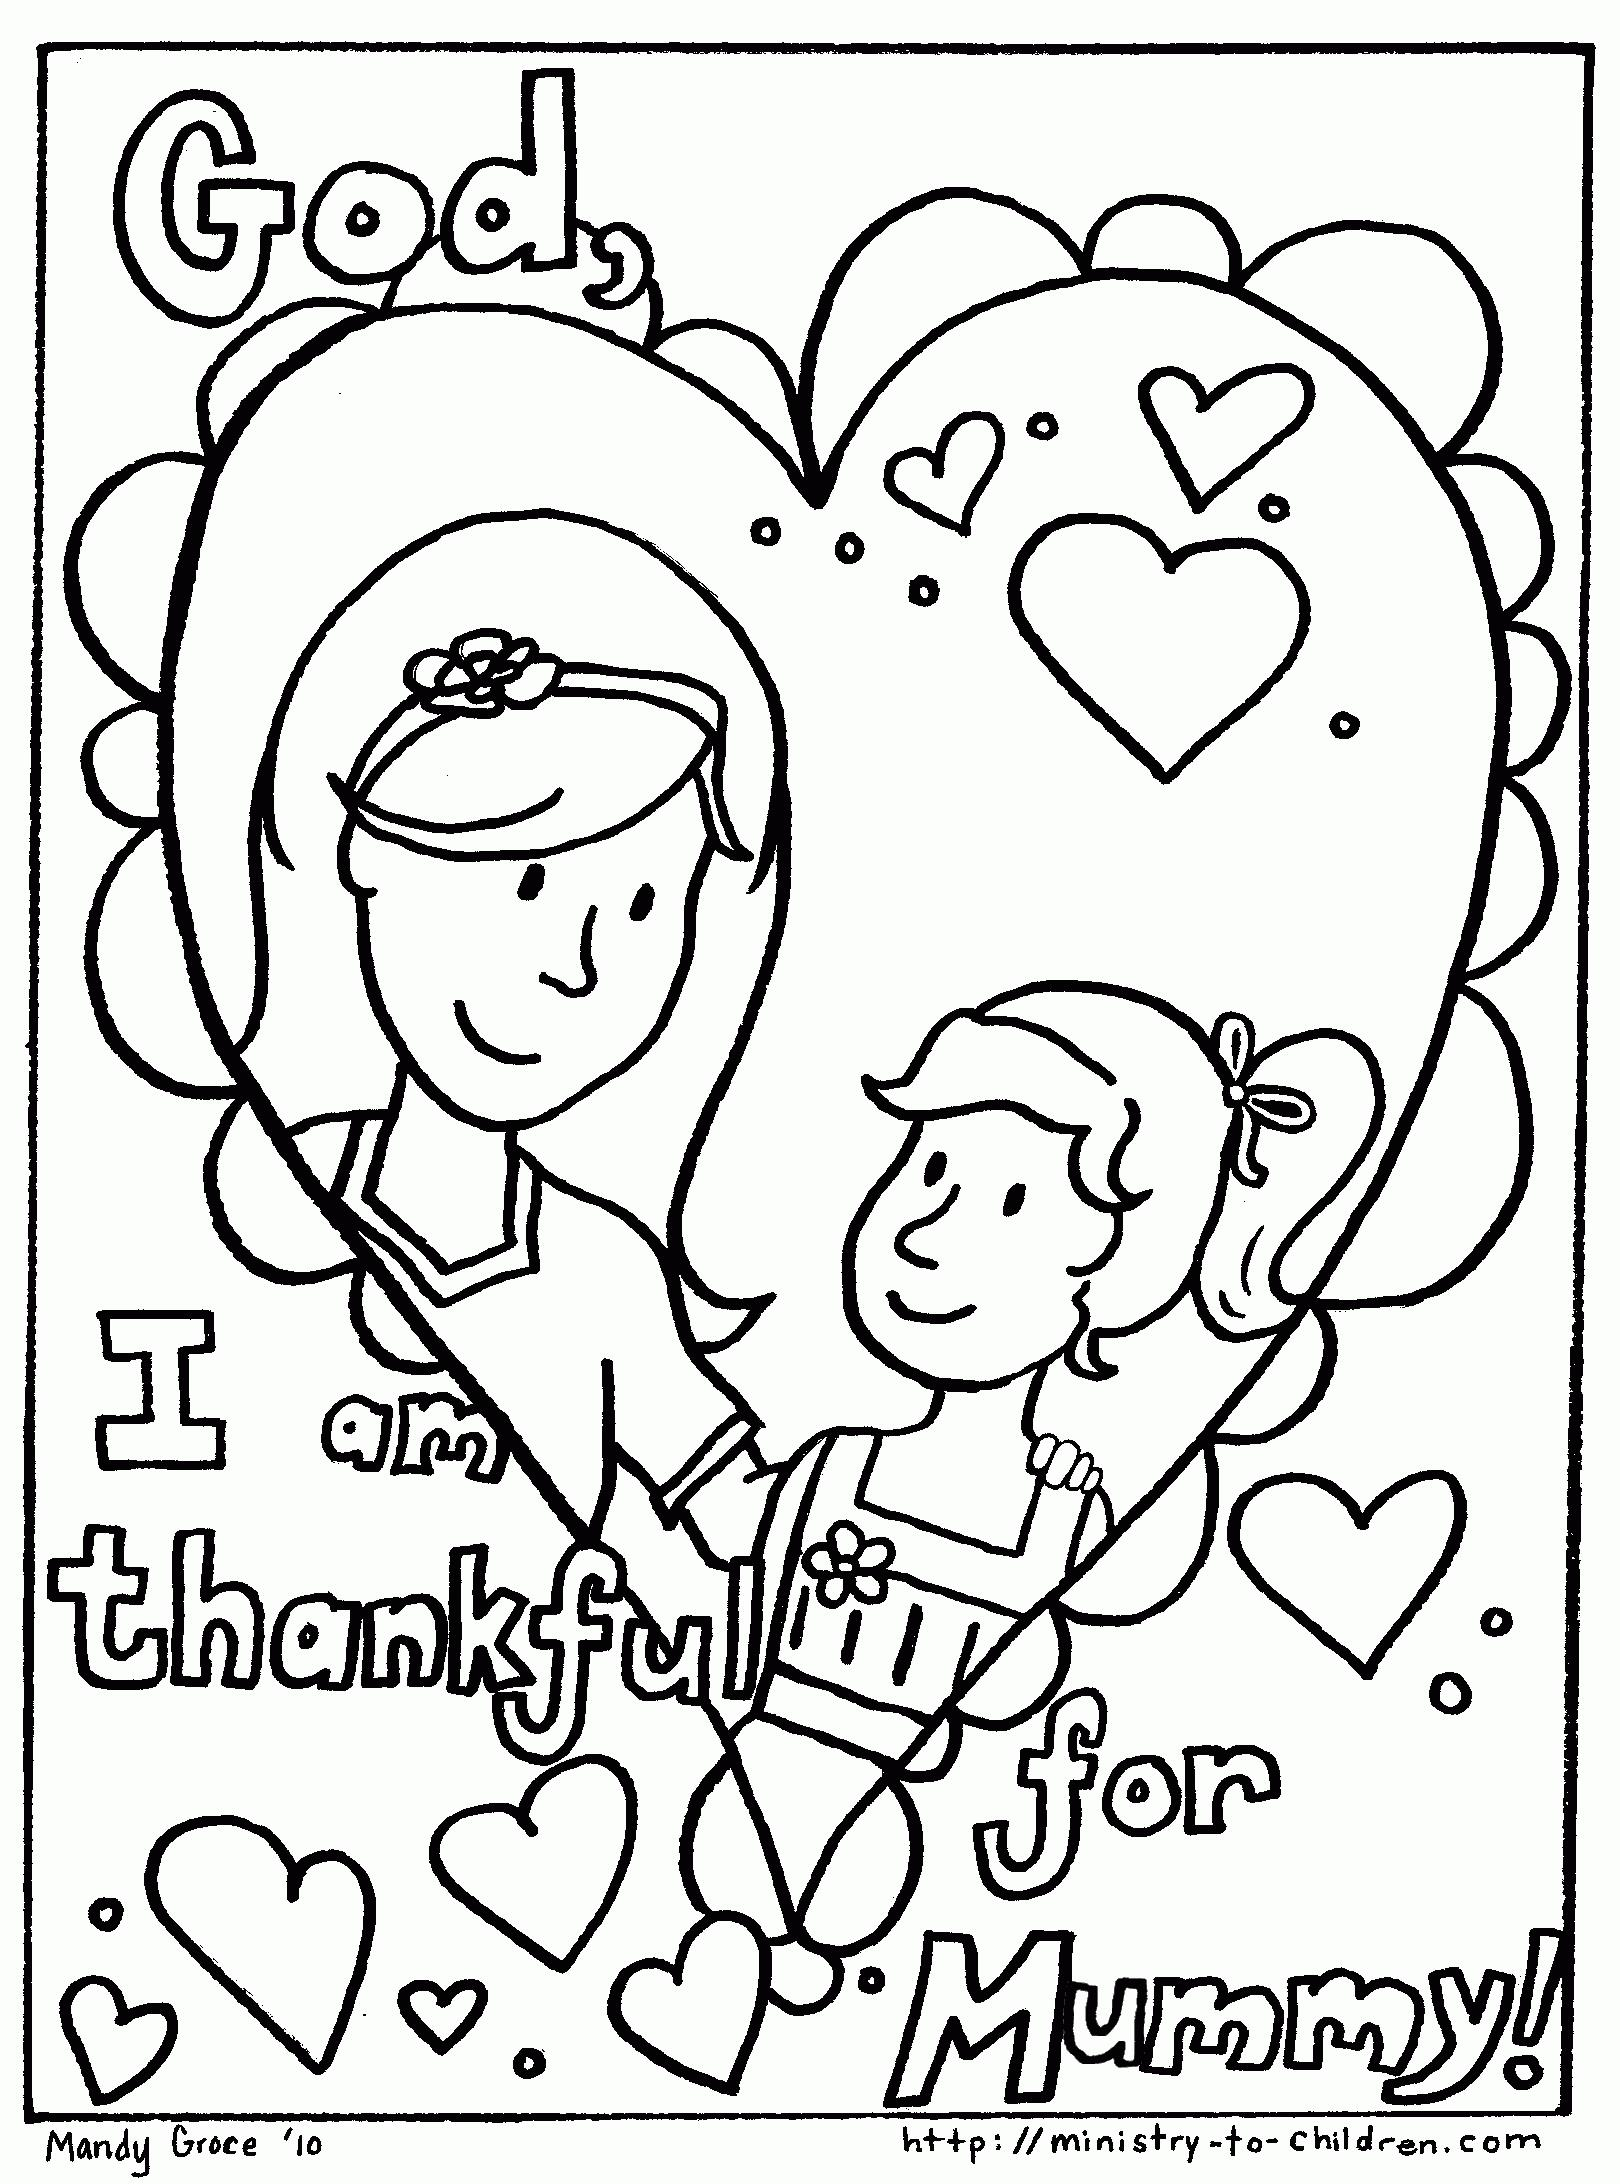 happy birthday mom cards to color ; mommy-coloring-pages-image-ideas-best-happy-birthday-printable-picture-for-and-cards-style_files_208-mom-to